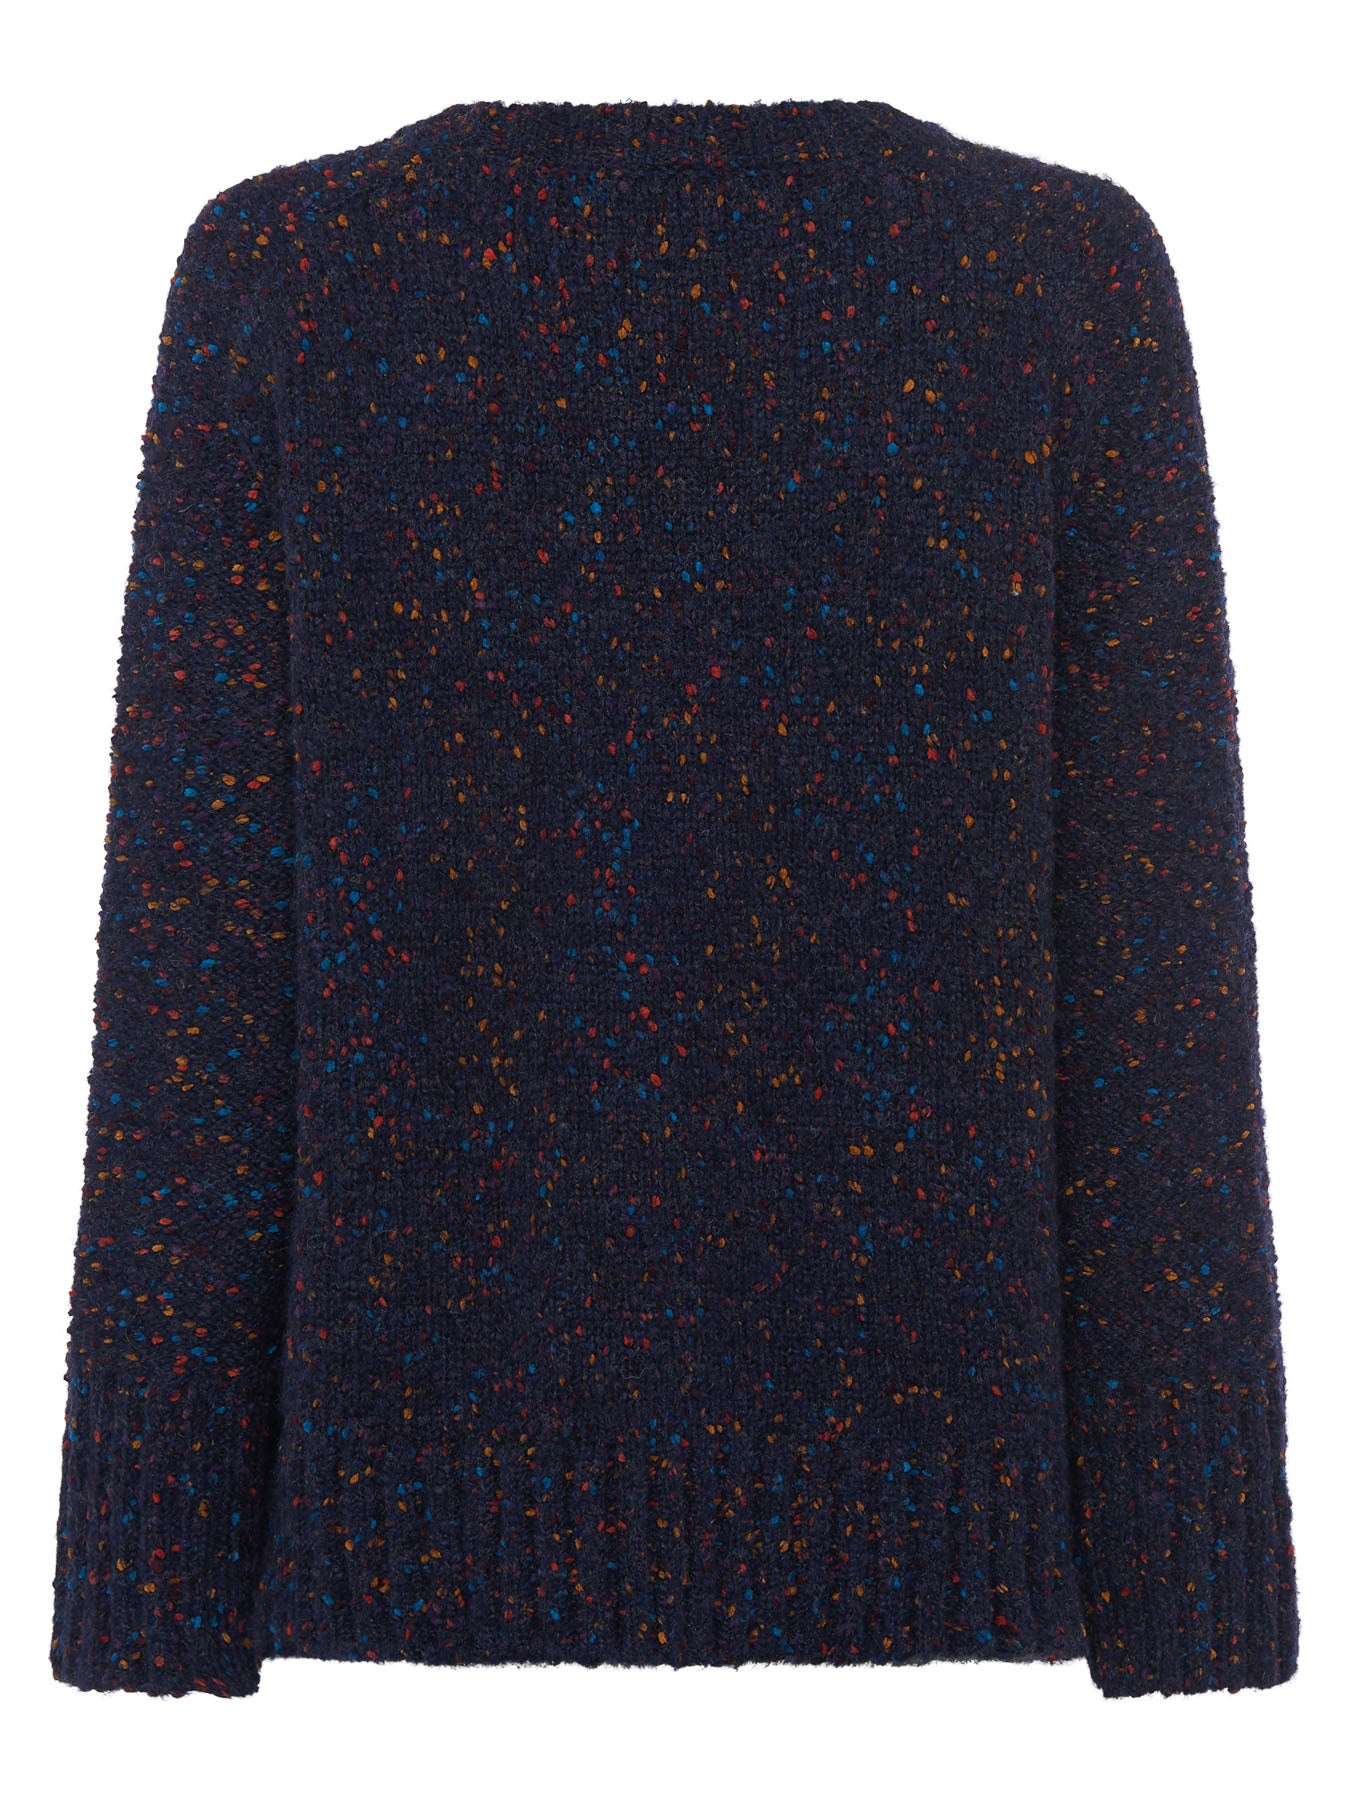 Great Plains Julia Knit Crew Neck Jumper for Ladies in Smokey Blue Multi